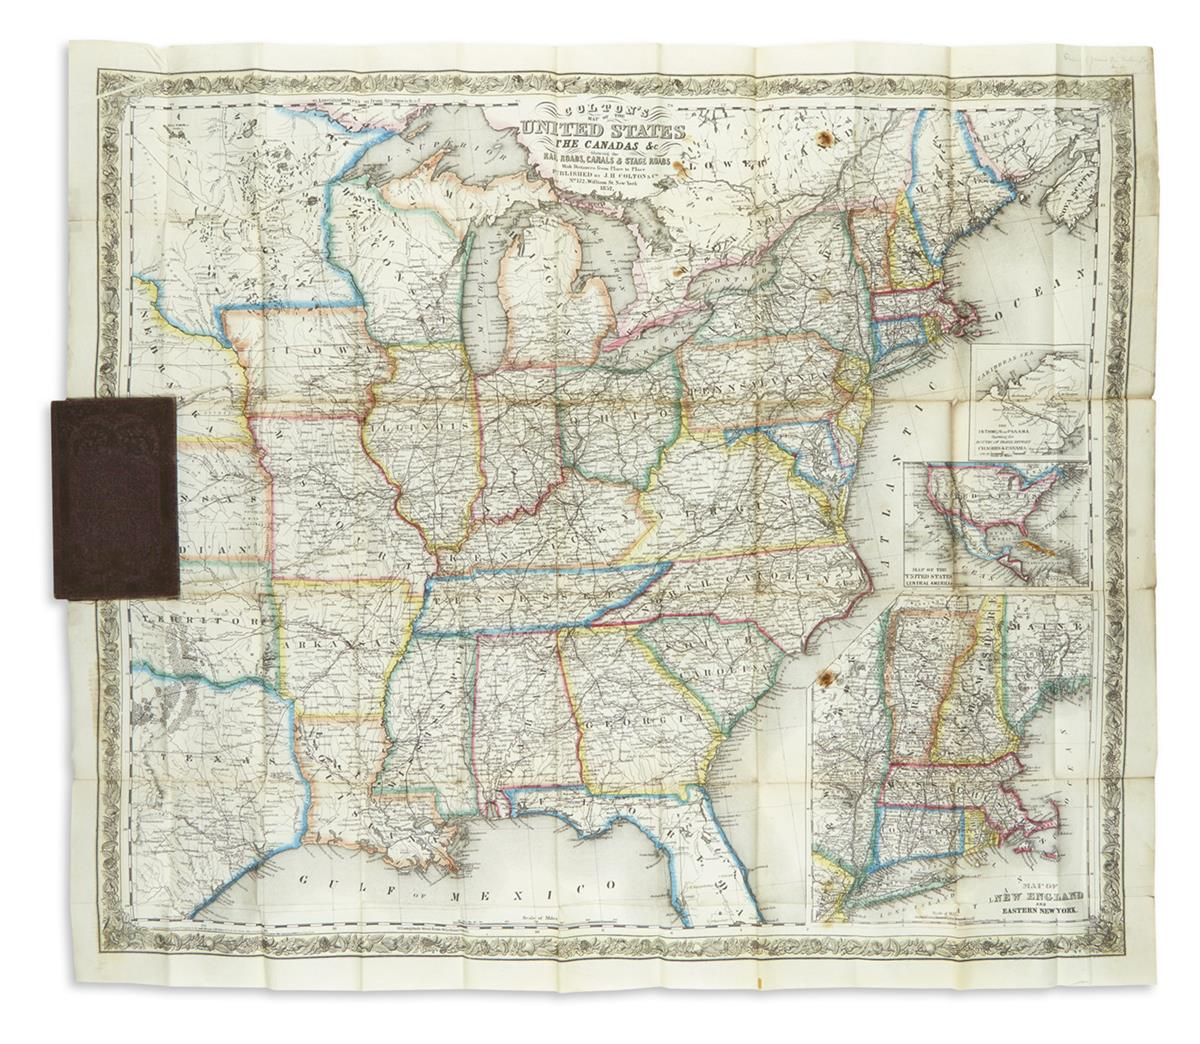 COLTON-JOSEPH-HUTCHINS-Coltons-Map-of-the-United-States-the-